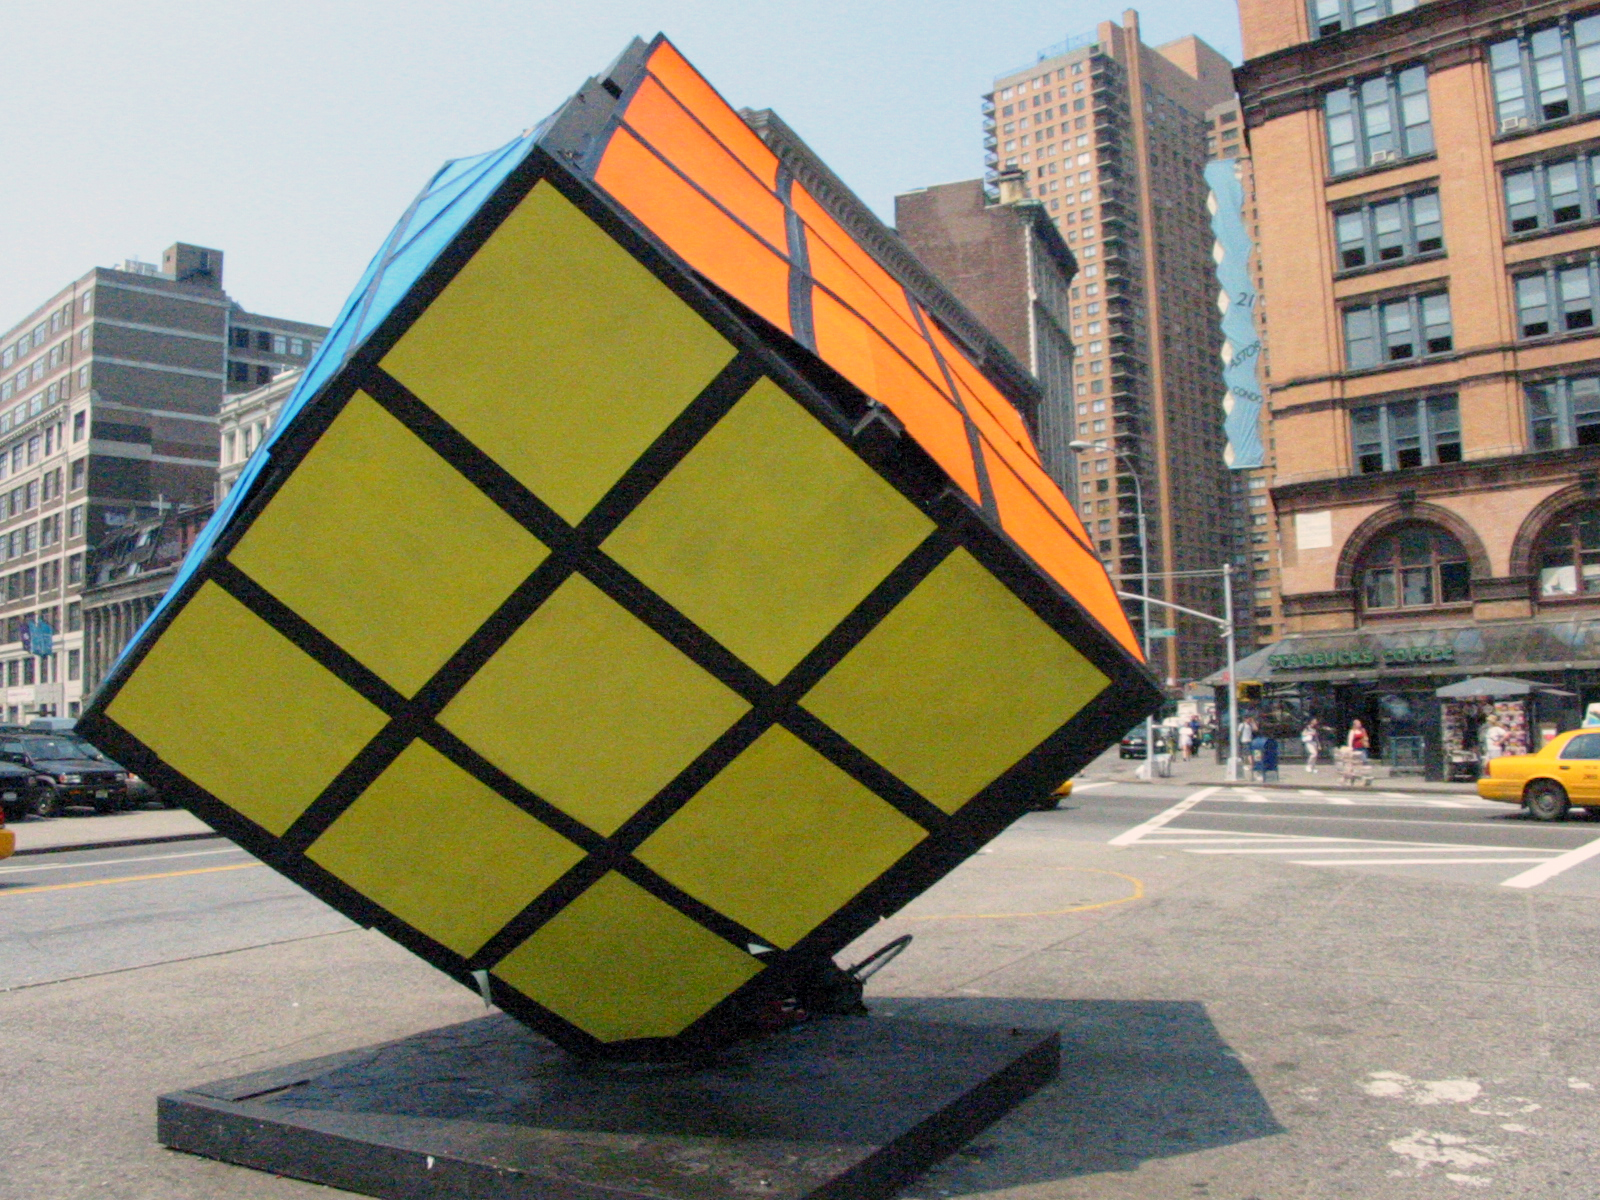 The Cube @ Astor Place, New York City